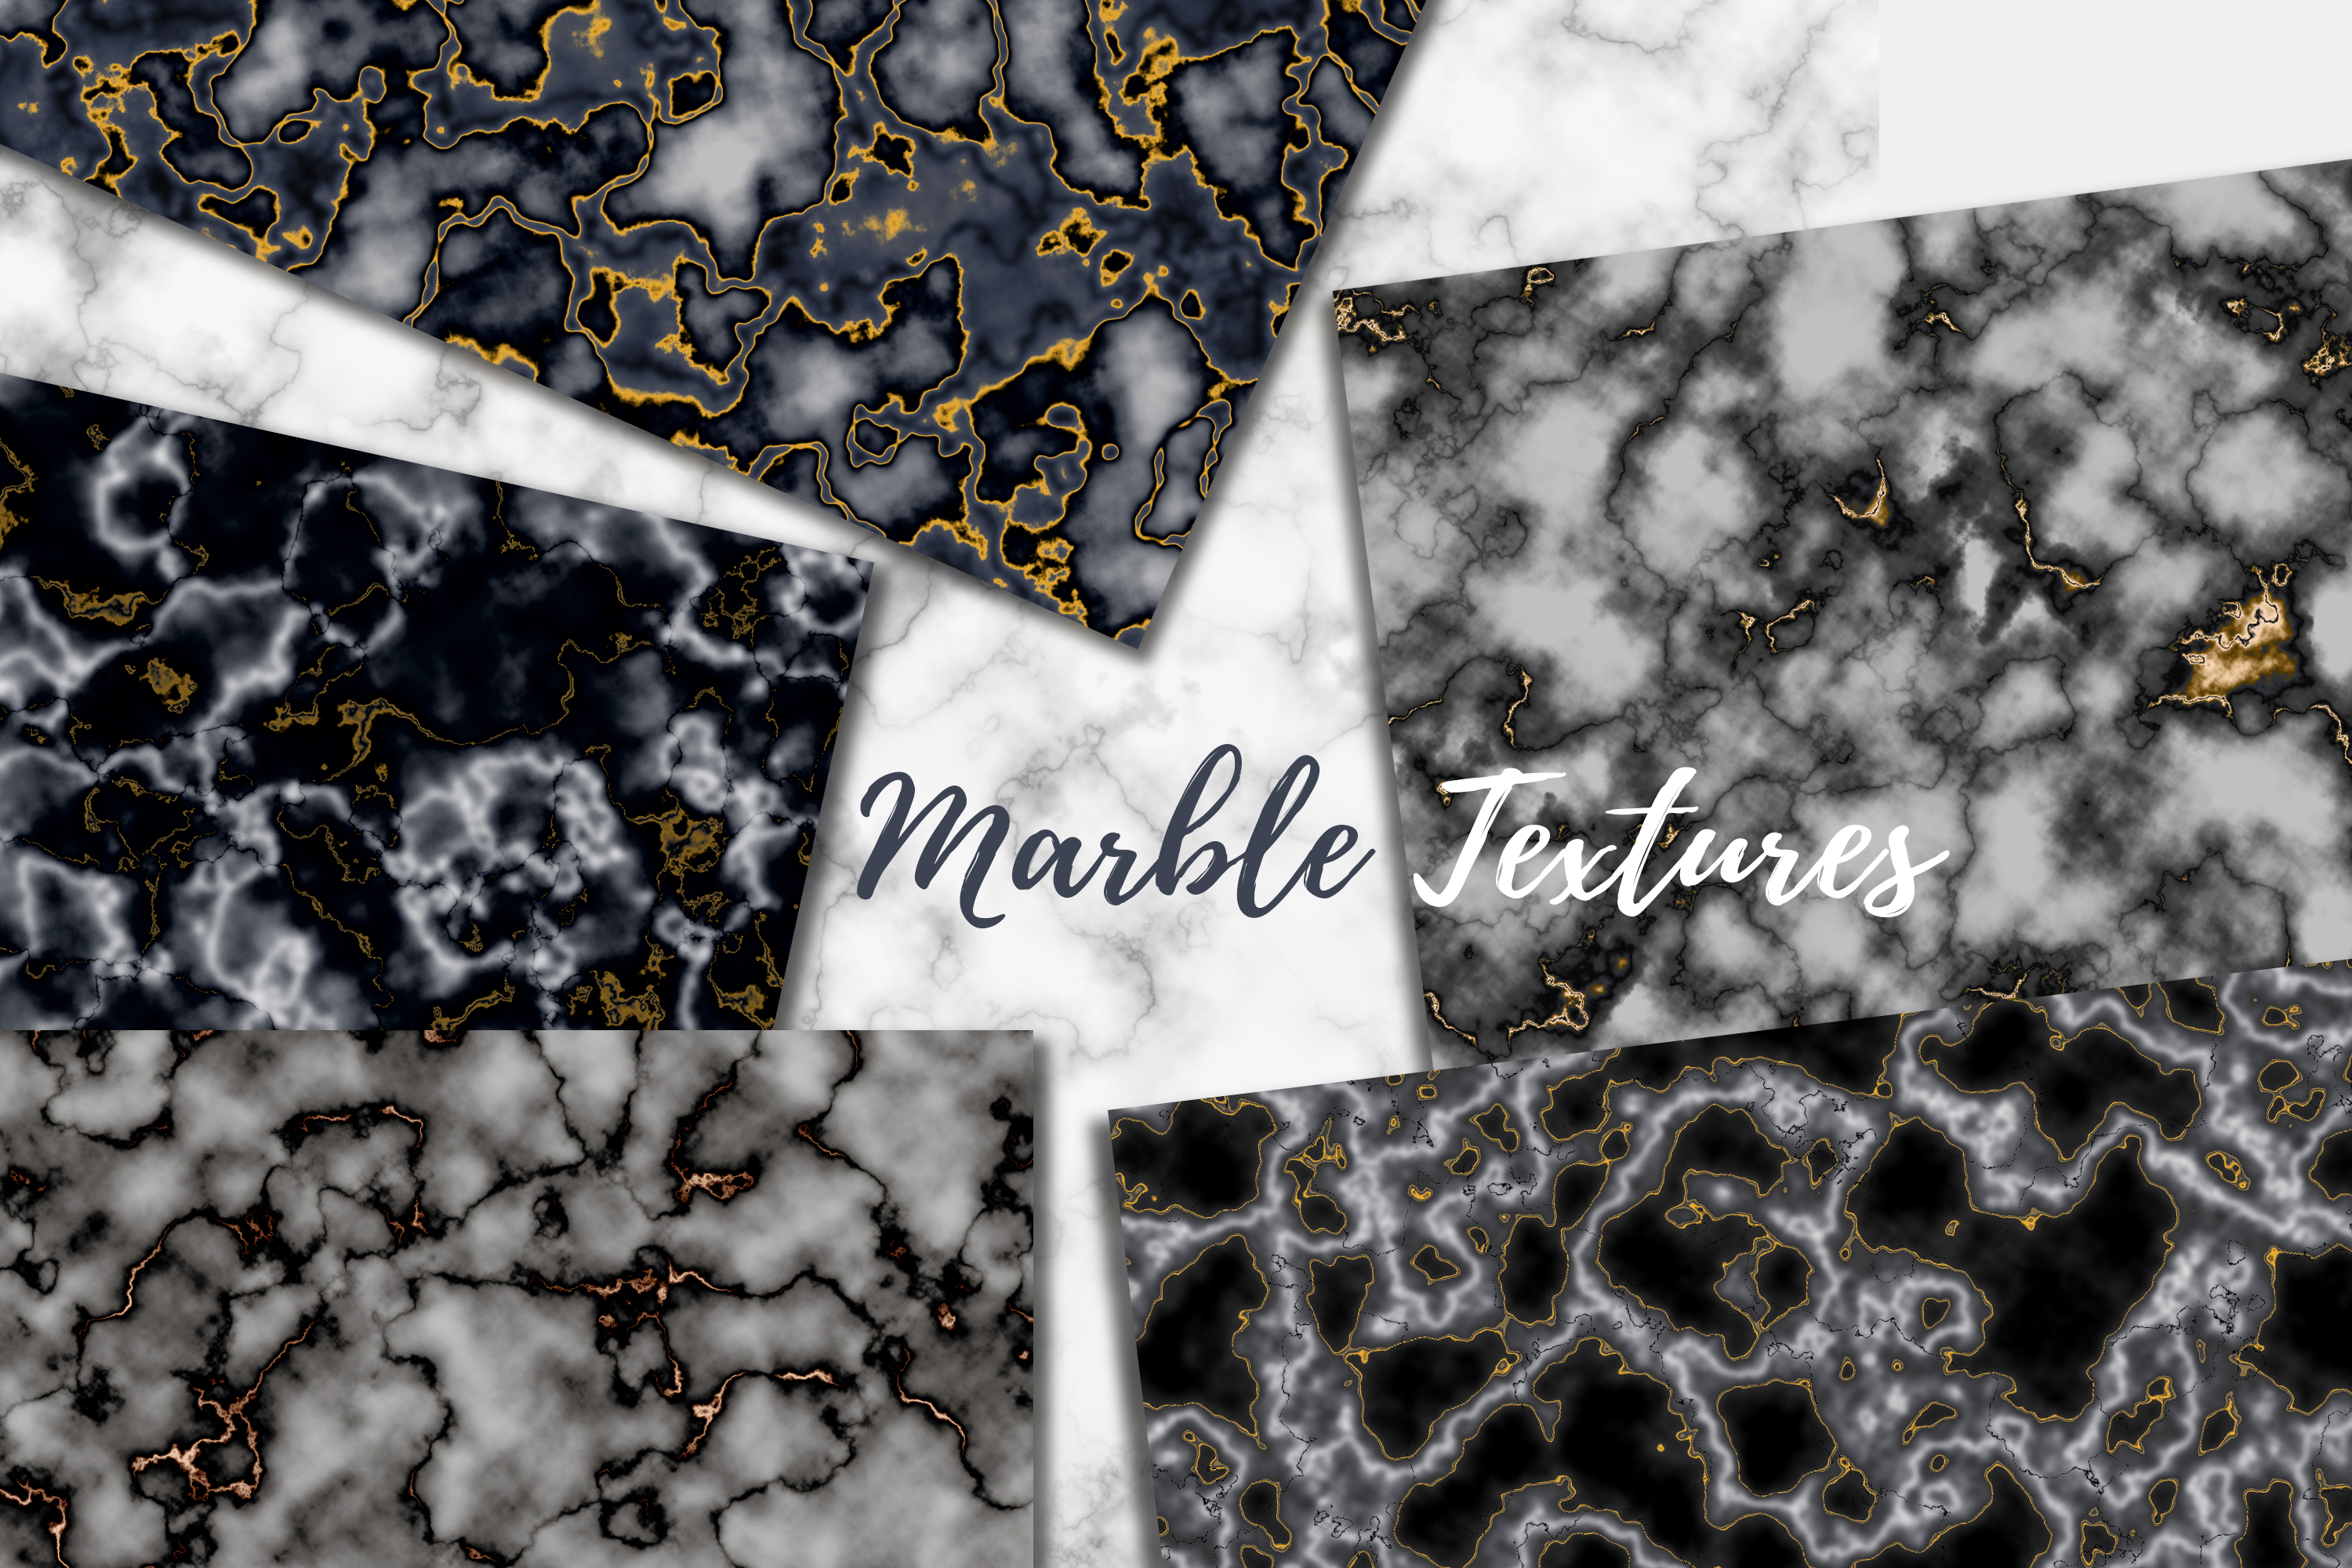 30 Realistic Marble Textures - JPG example image 4